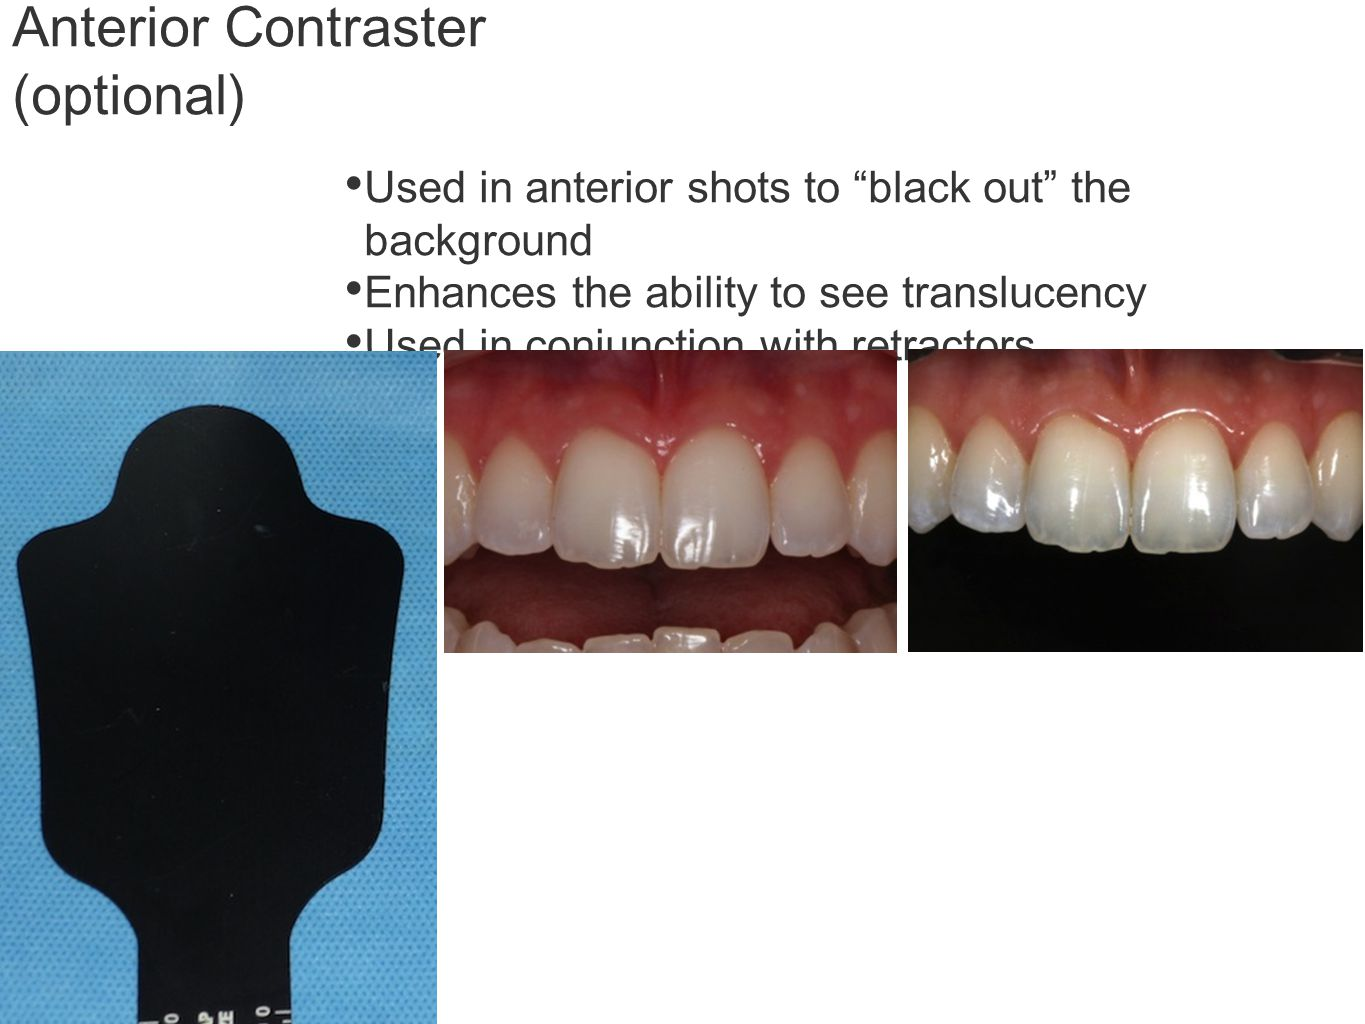 Anterior Contraster (optional) Used in anterior shots to black out the background Enhances the ability to see translucency Used in conjunction with retractors